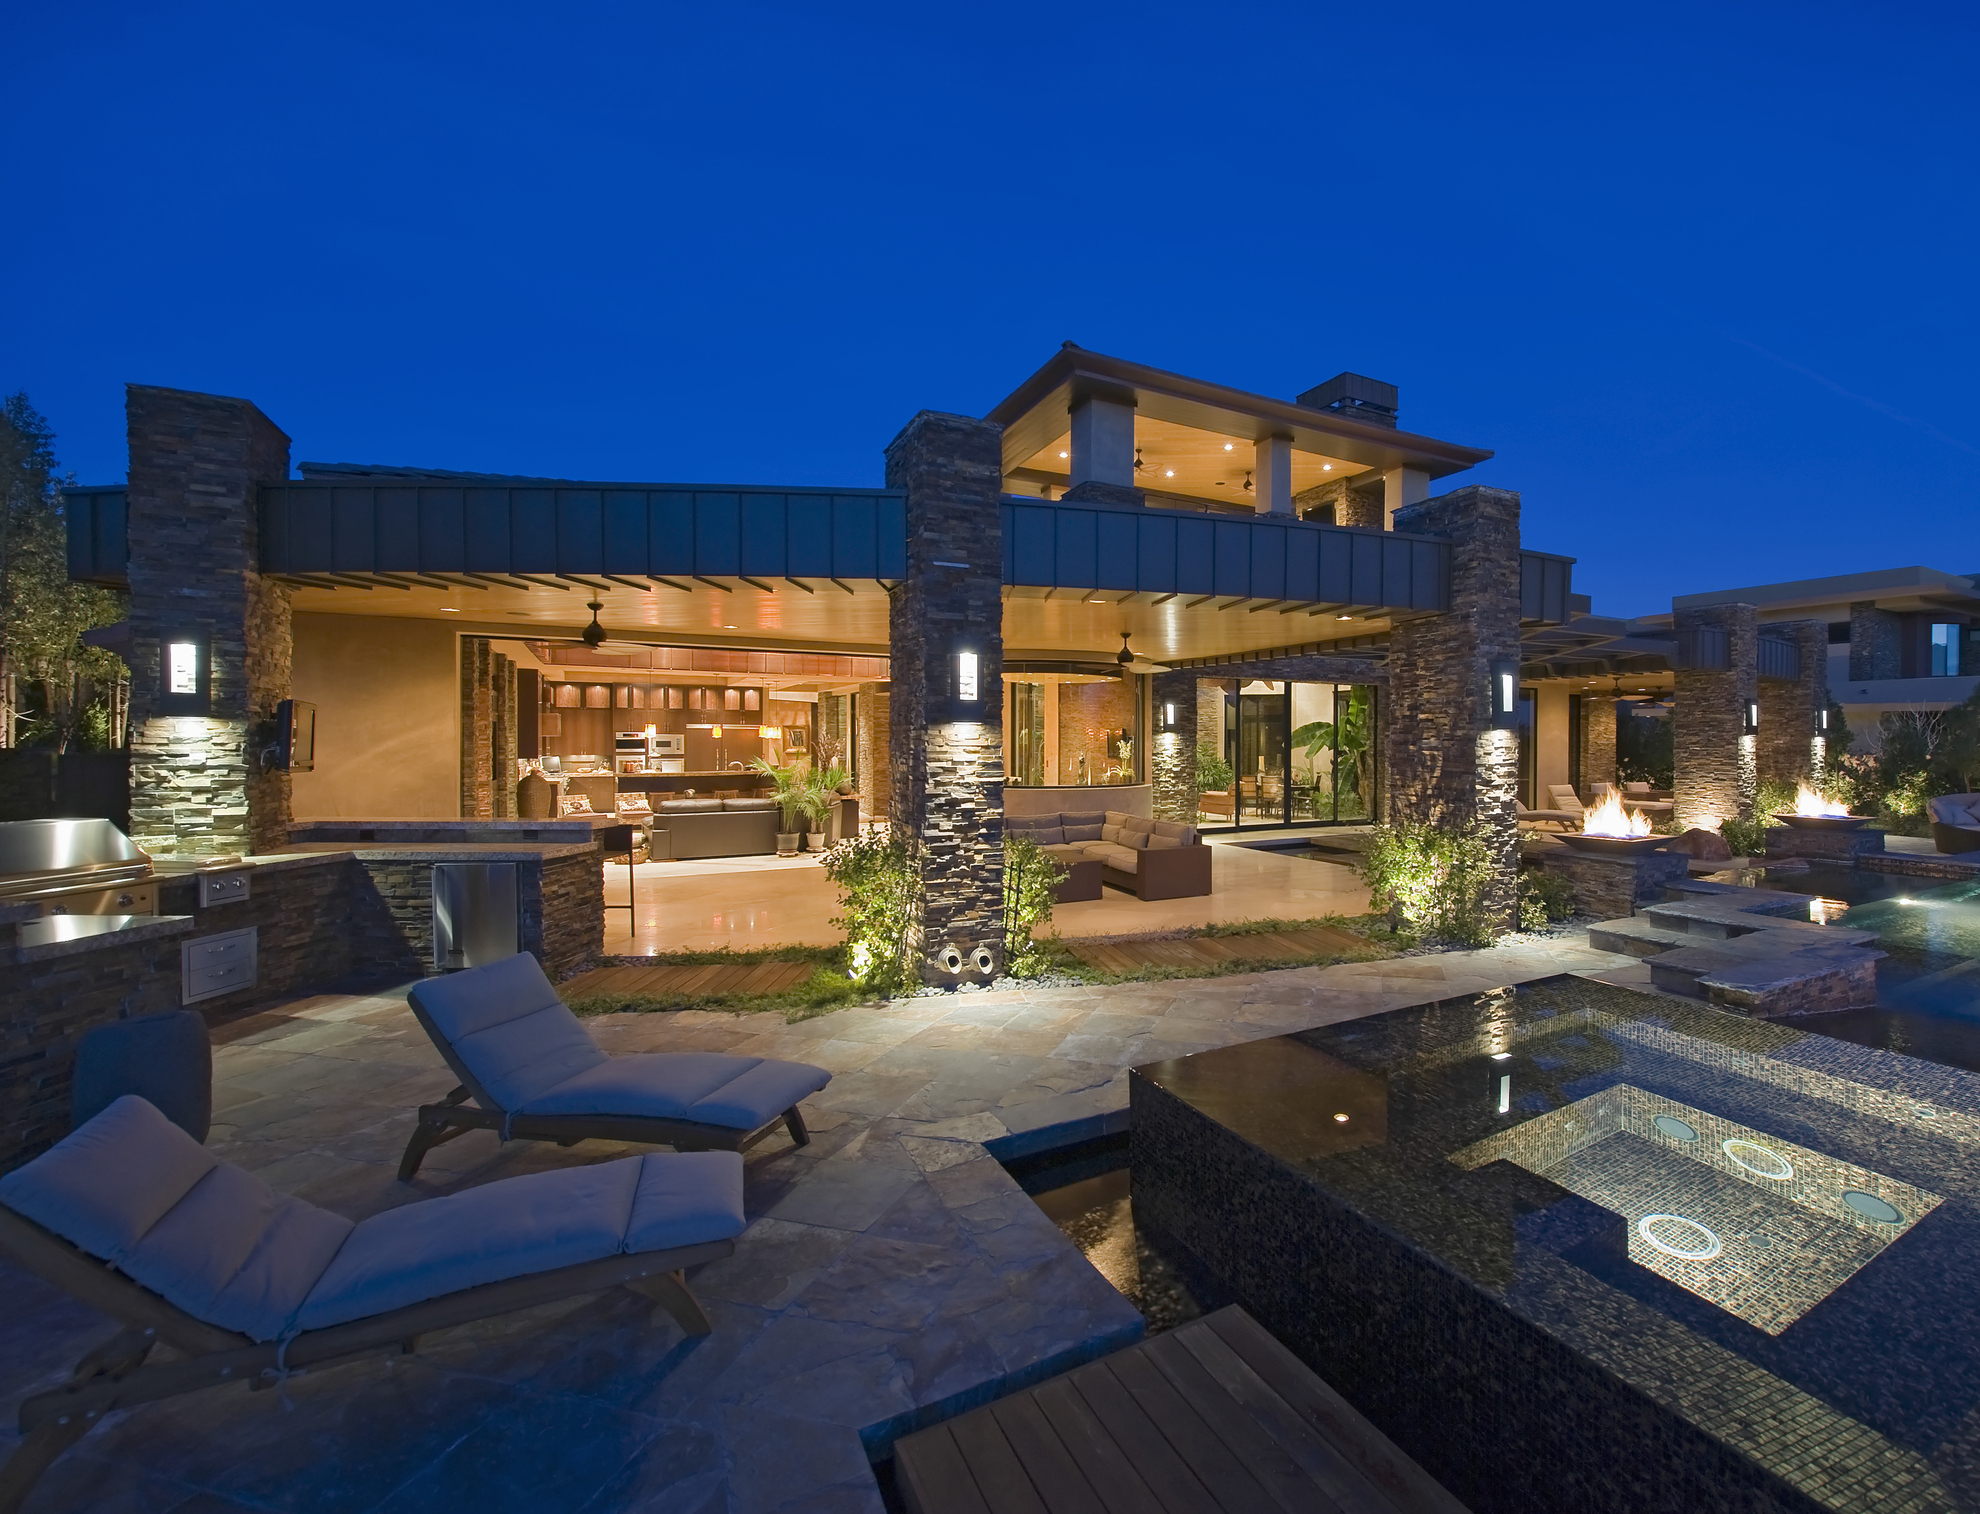 Contemporary House With Plunge Pool